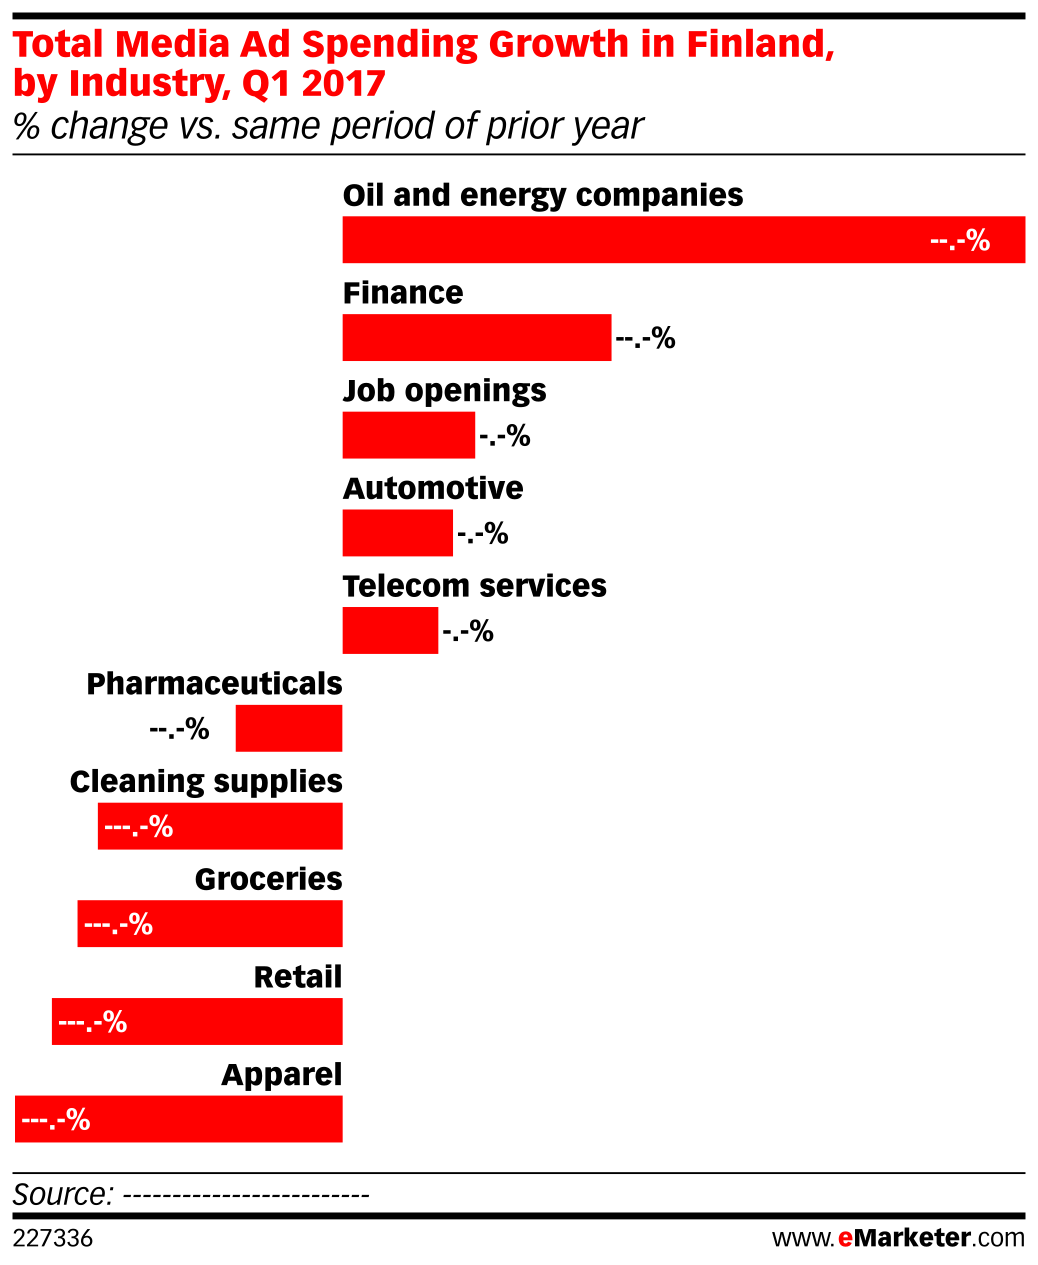 Total Media Ad Spending Growth in Finland, by Industry, Q1 2017 (% change vs. same period of prior year)